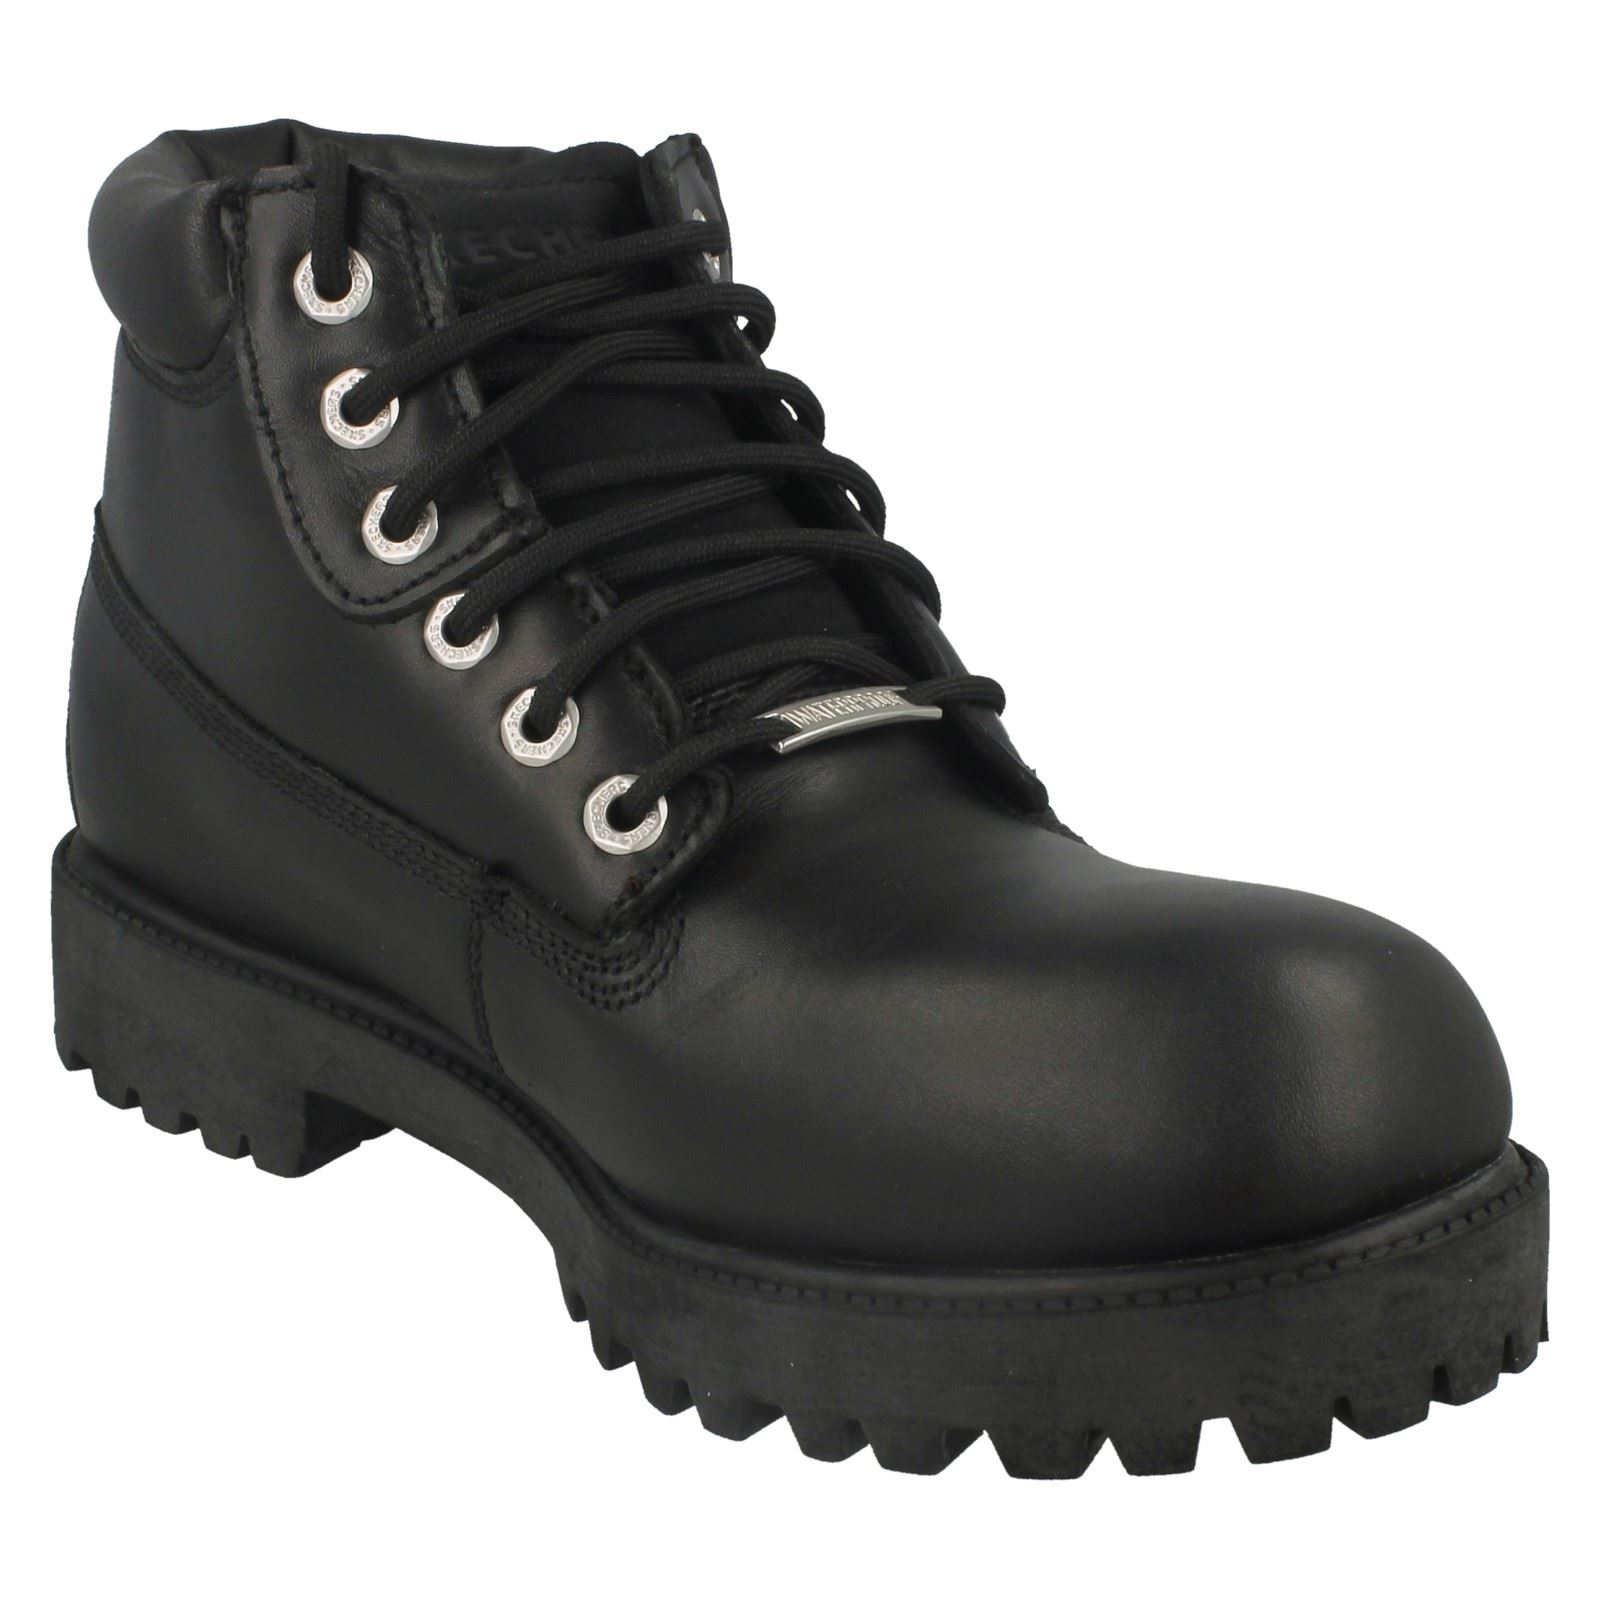 Mens Sketchers Verdict Casual Waterproof Lace Up Boots | eBay